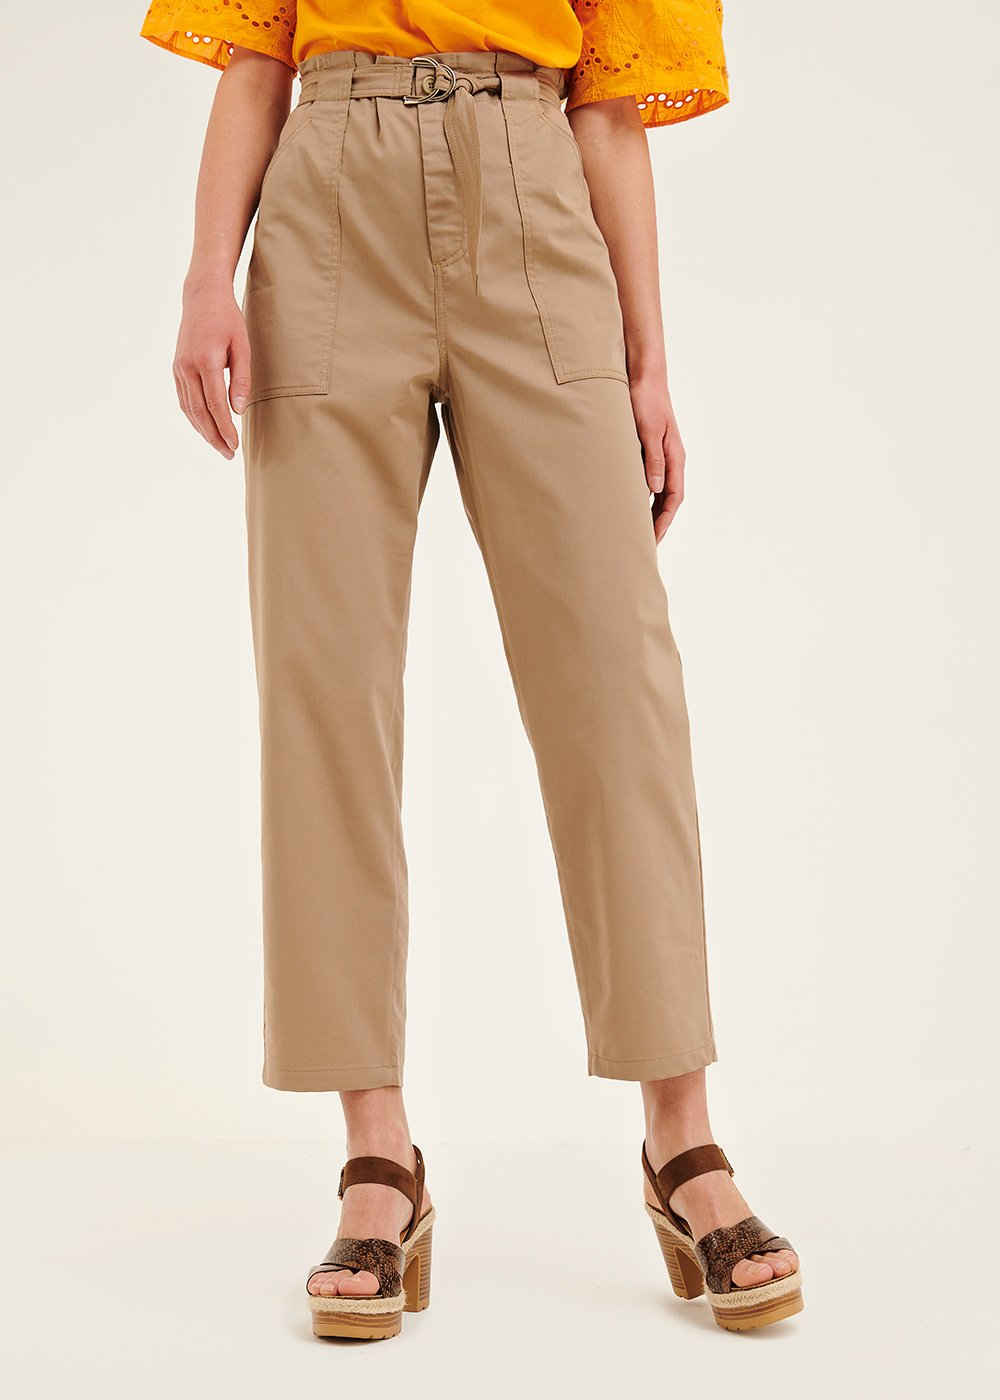 Lara trousers with large pockets and buckle - Desert - Woman